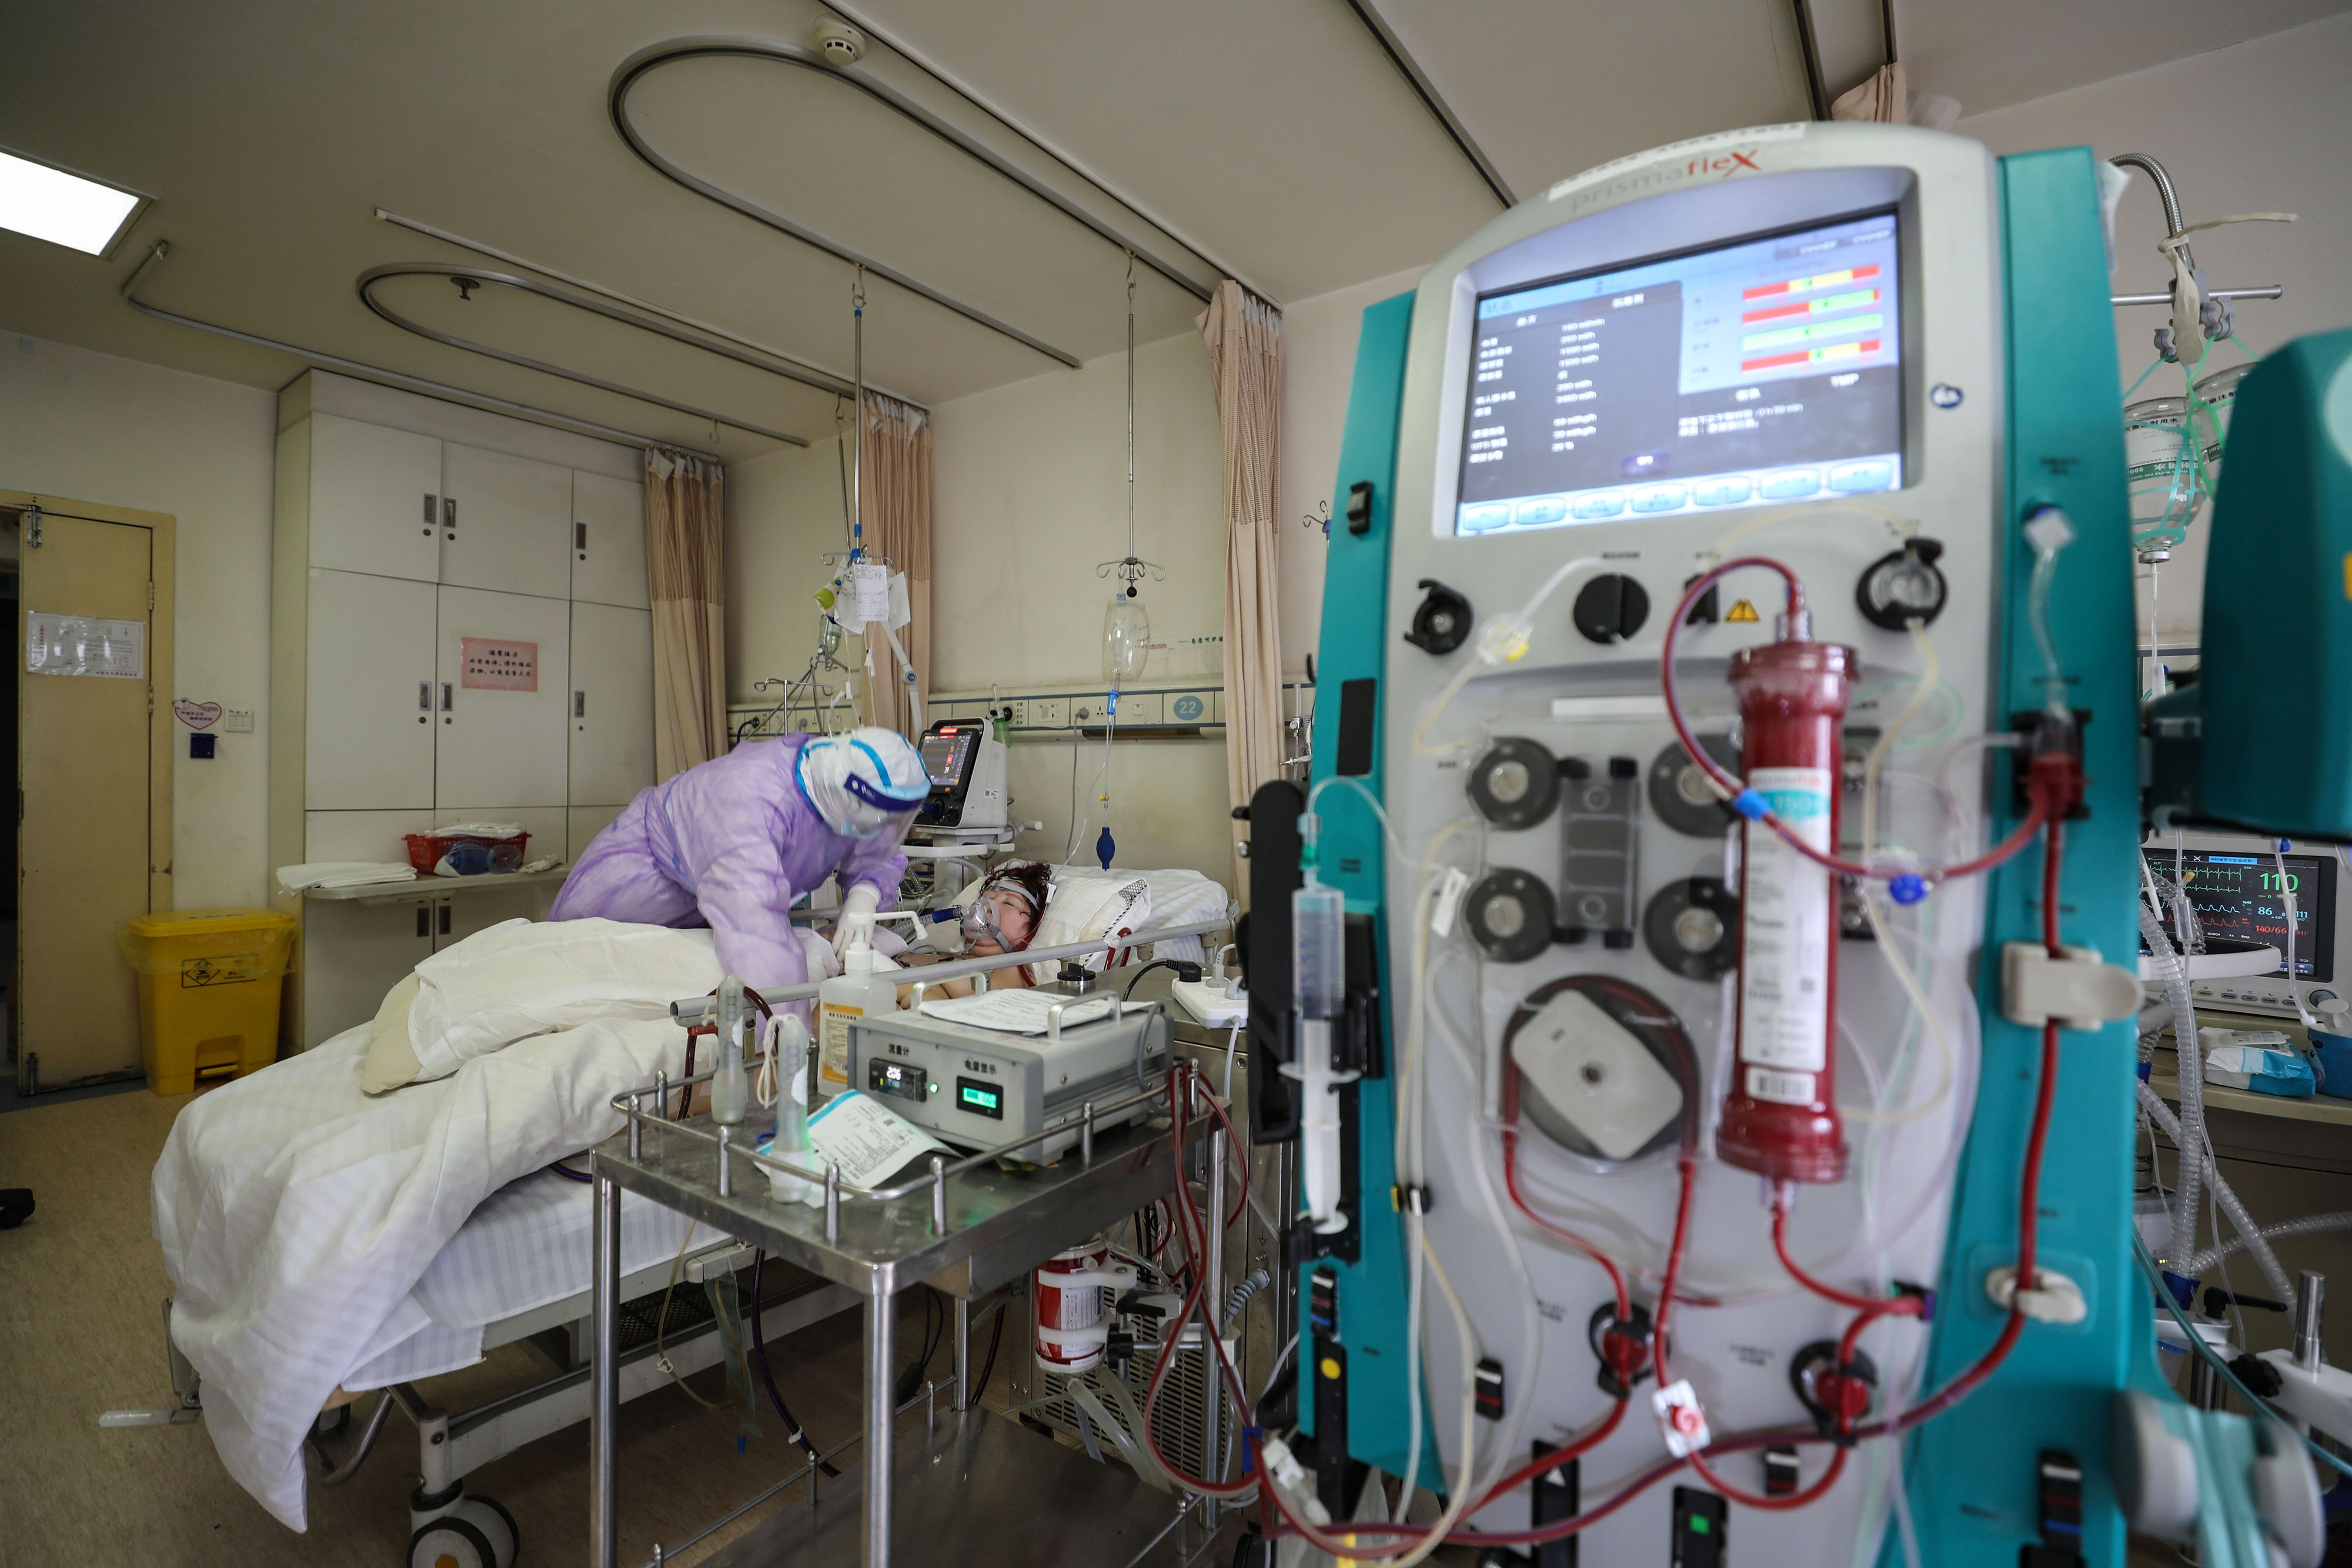 A patient infected by the COVID-19 coronavirus receives treatment by an Extracorporeal membrane oxygenation (ECMO) at the Red Cross hospital in Wuhan in China's central Hubei province. (STR/AFP via Getty Images)